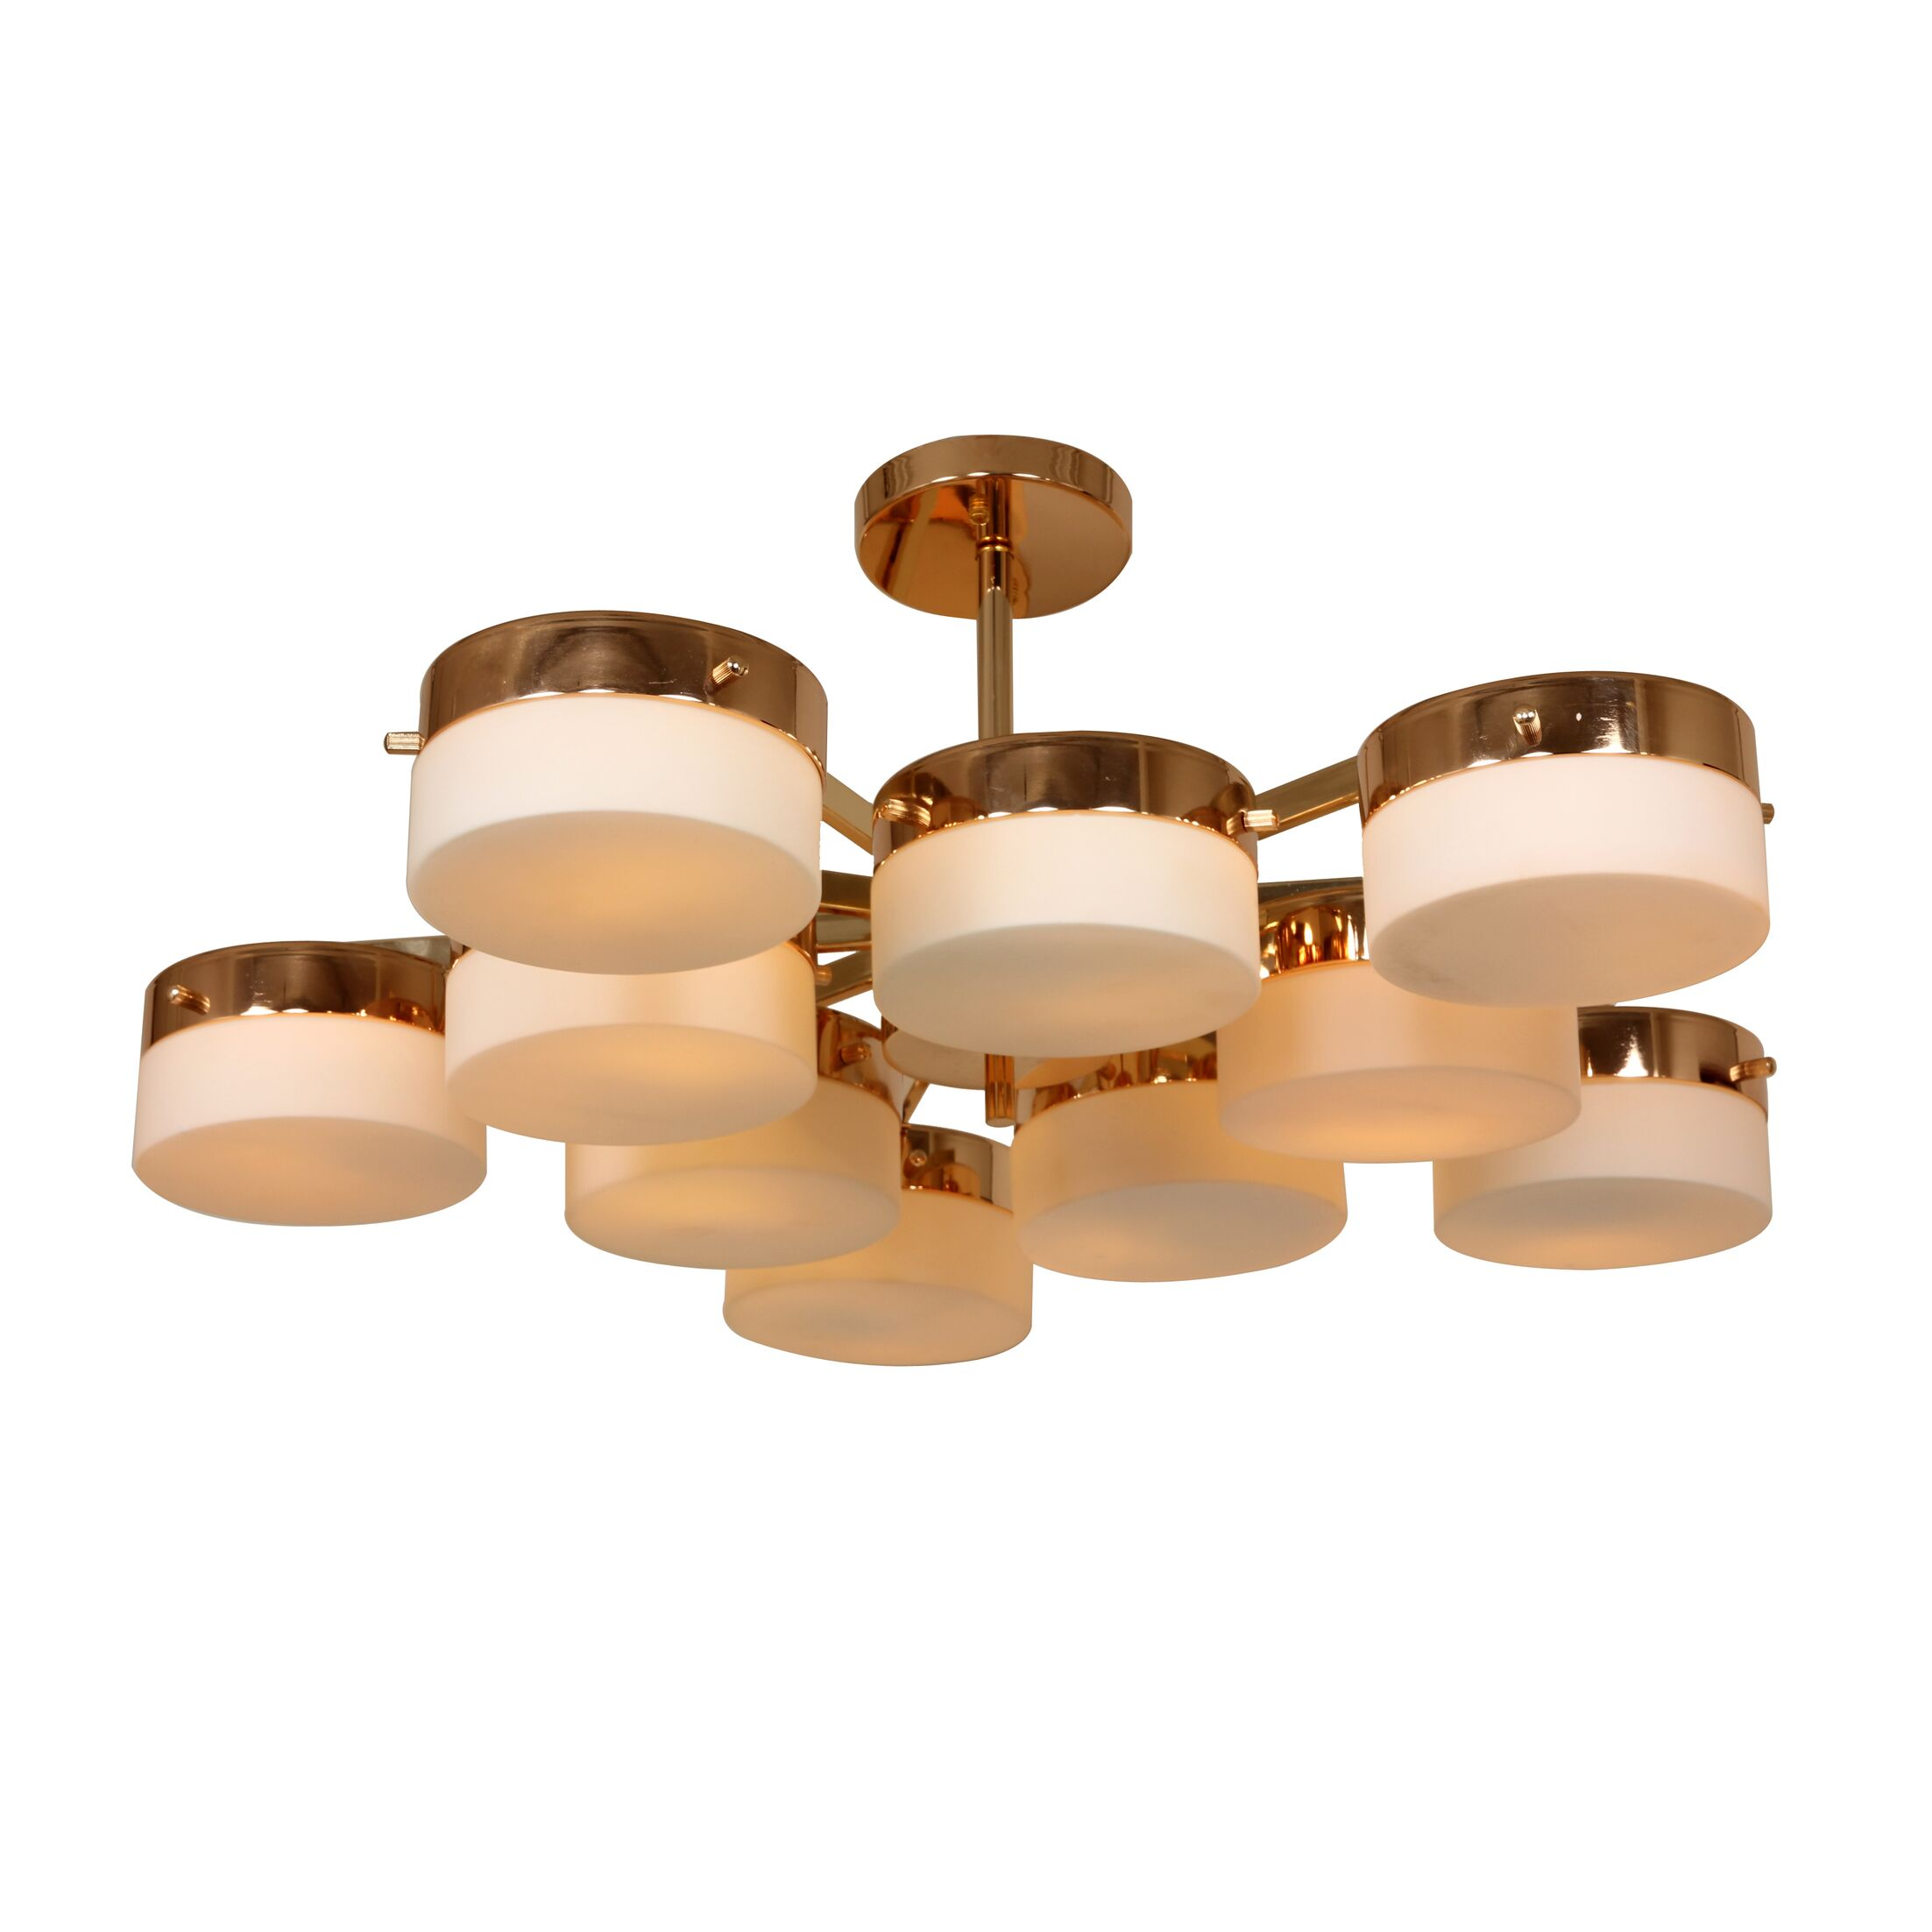 Multiplex 10-Light Sputnik Chandelier